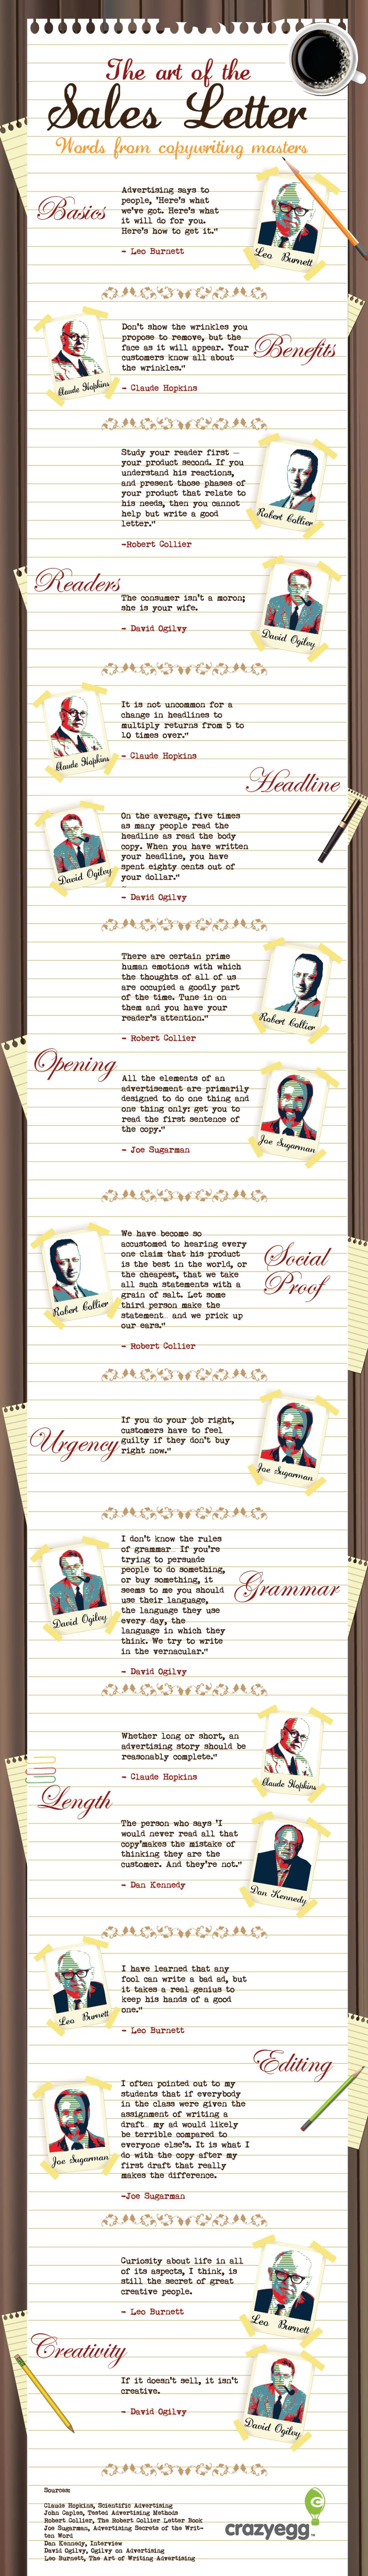 The Art of the Sales Letter [Infographic] More helpful how-tos about basic copywriting at http://www.nonprofitcopywriter.com/basic-copywriting.html.